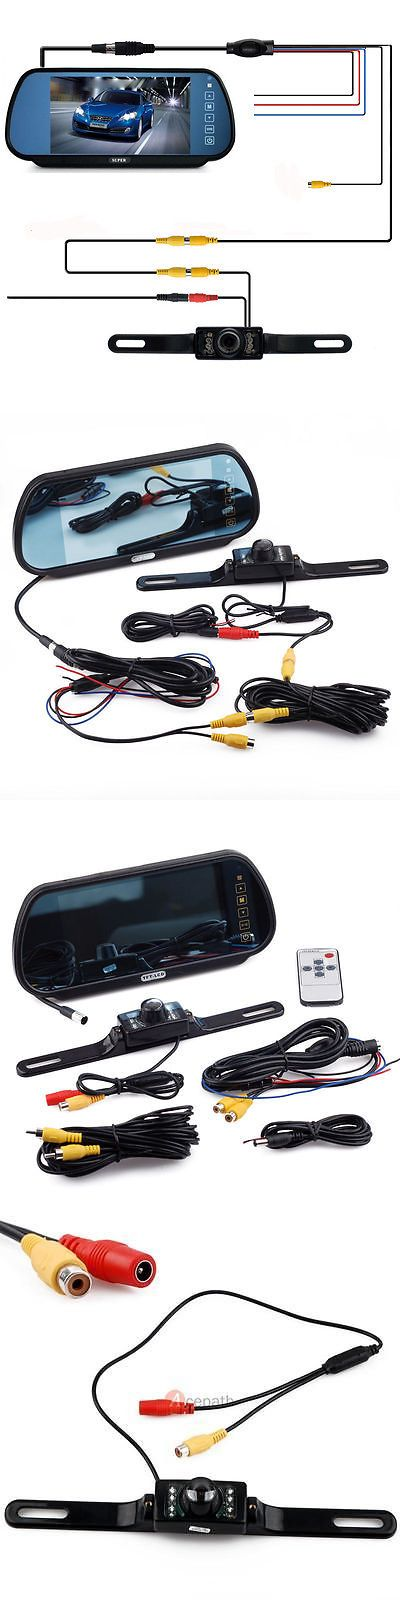 Rear View Monitors Cams and Kits: 7 Lcd Monitor Rear View Mirror Car Reverse Backup Camera Night Vision Wired Kit -> BUY IT NOW ONLY: $42.9 on eBay!